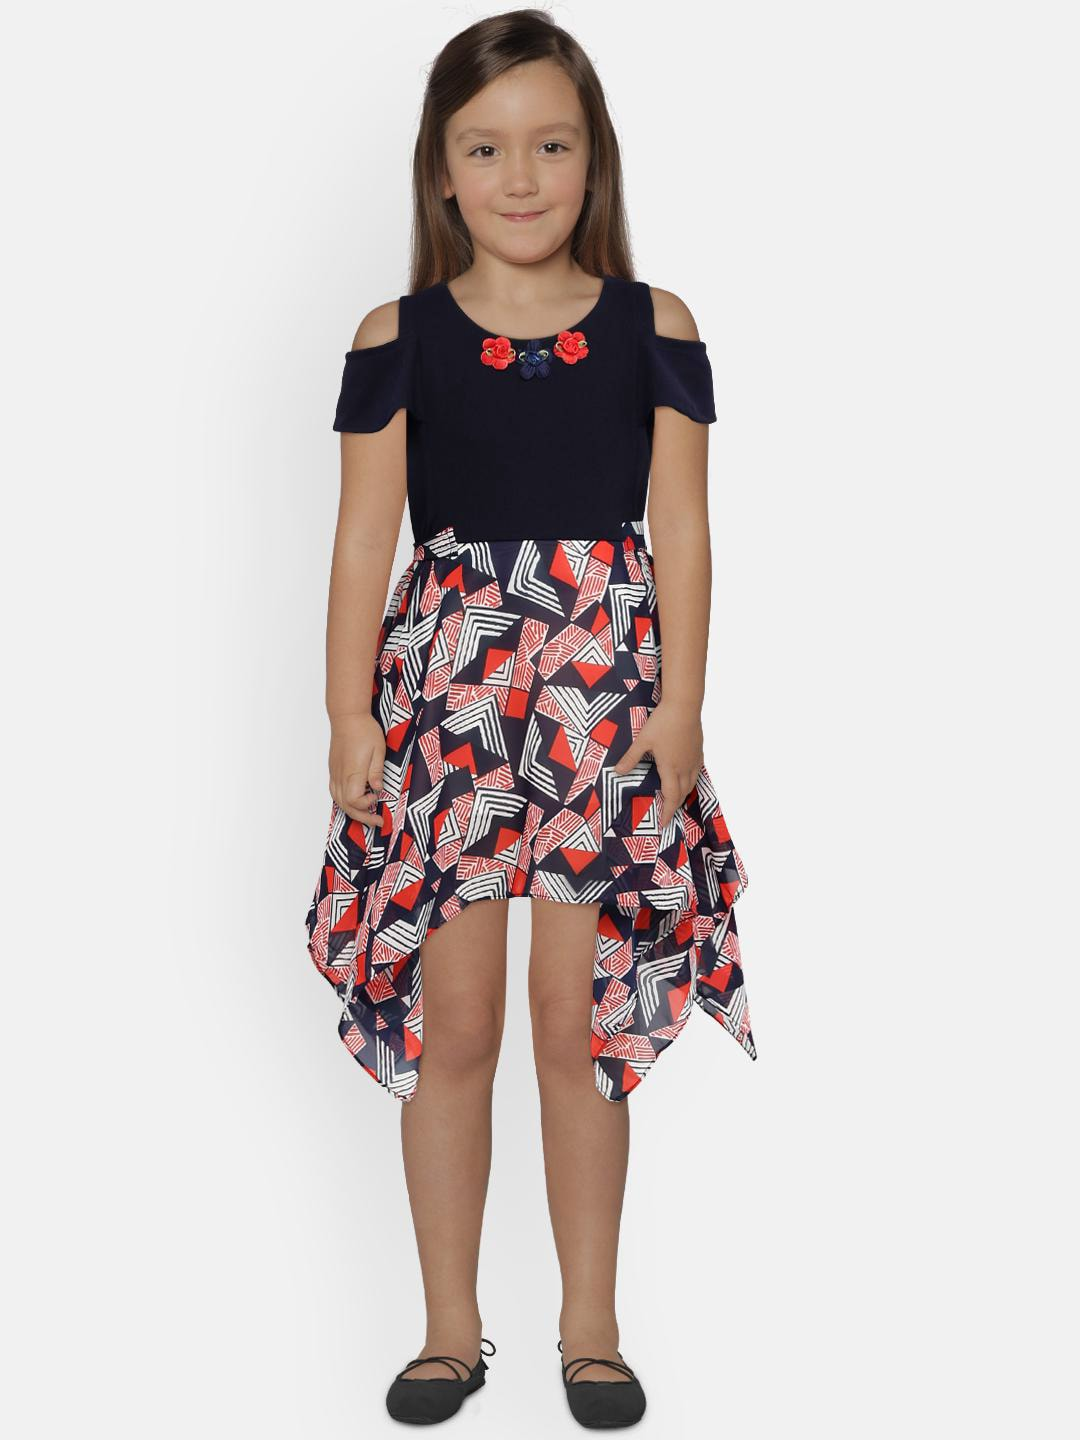 55a3661374 Girls Dresses - Buy Frocks   Gowns for Girls Online